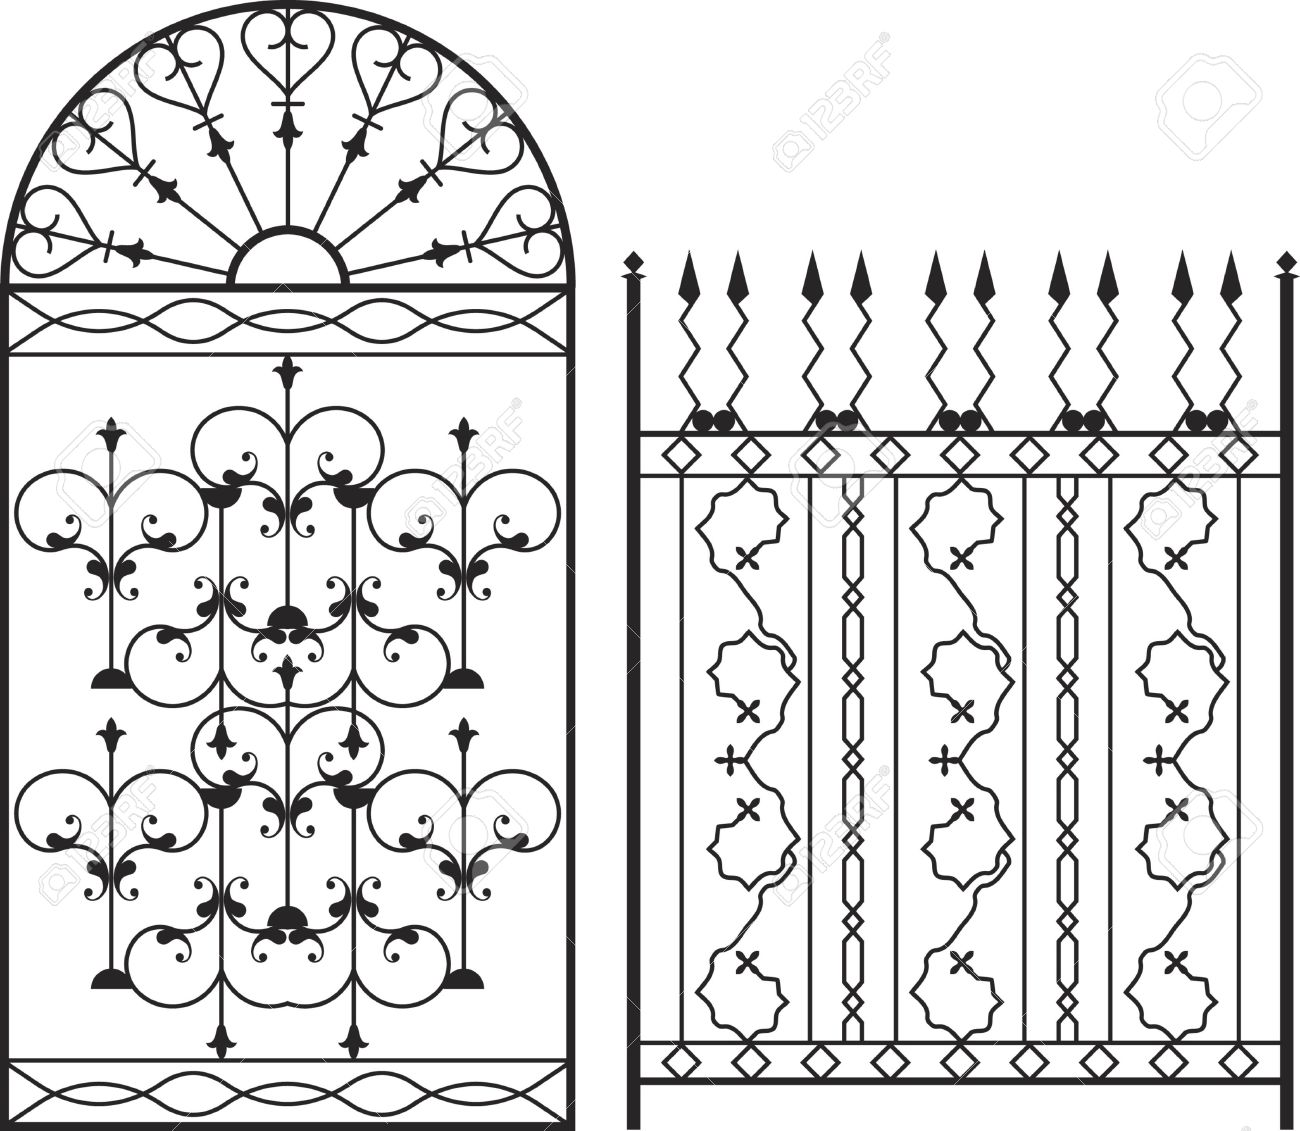 Grill Fence Design Wood fence drawing at getdrawings free for personal use wood 1300x1131 wrought iron gate door fence window grill railing design workwithnaturefo